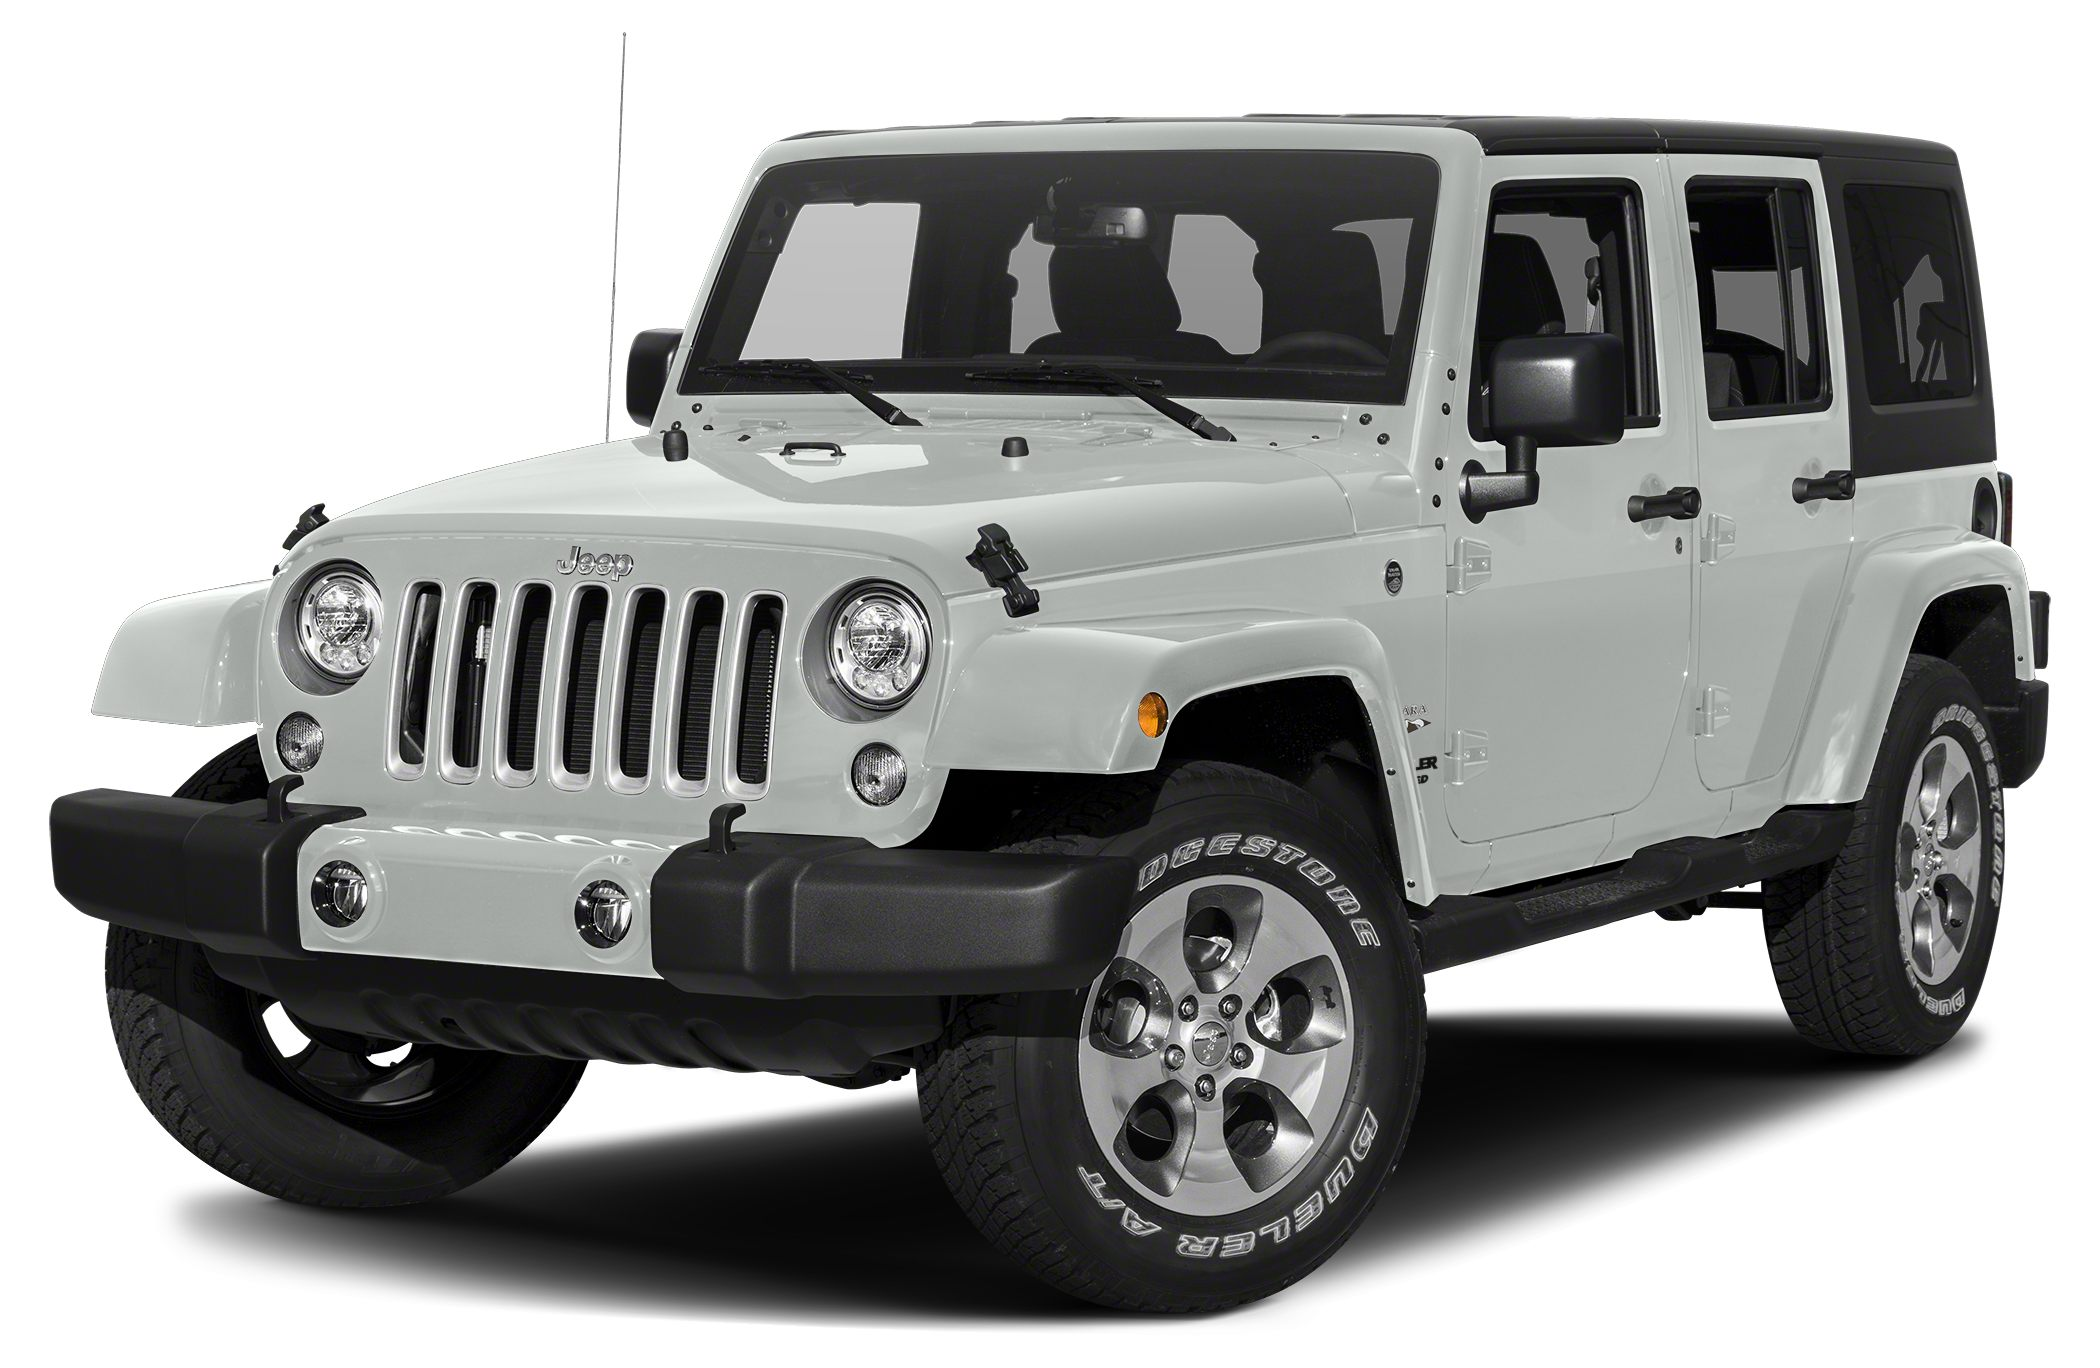 2017 Jeep Wrangler Unlimited Sahara 2017 Jeep Wrangler Unlimited Sahara in Bright White Clearcoat